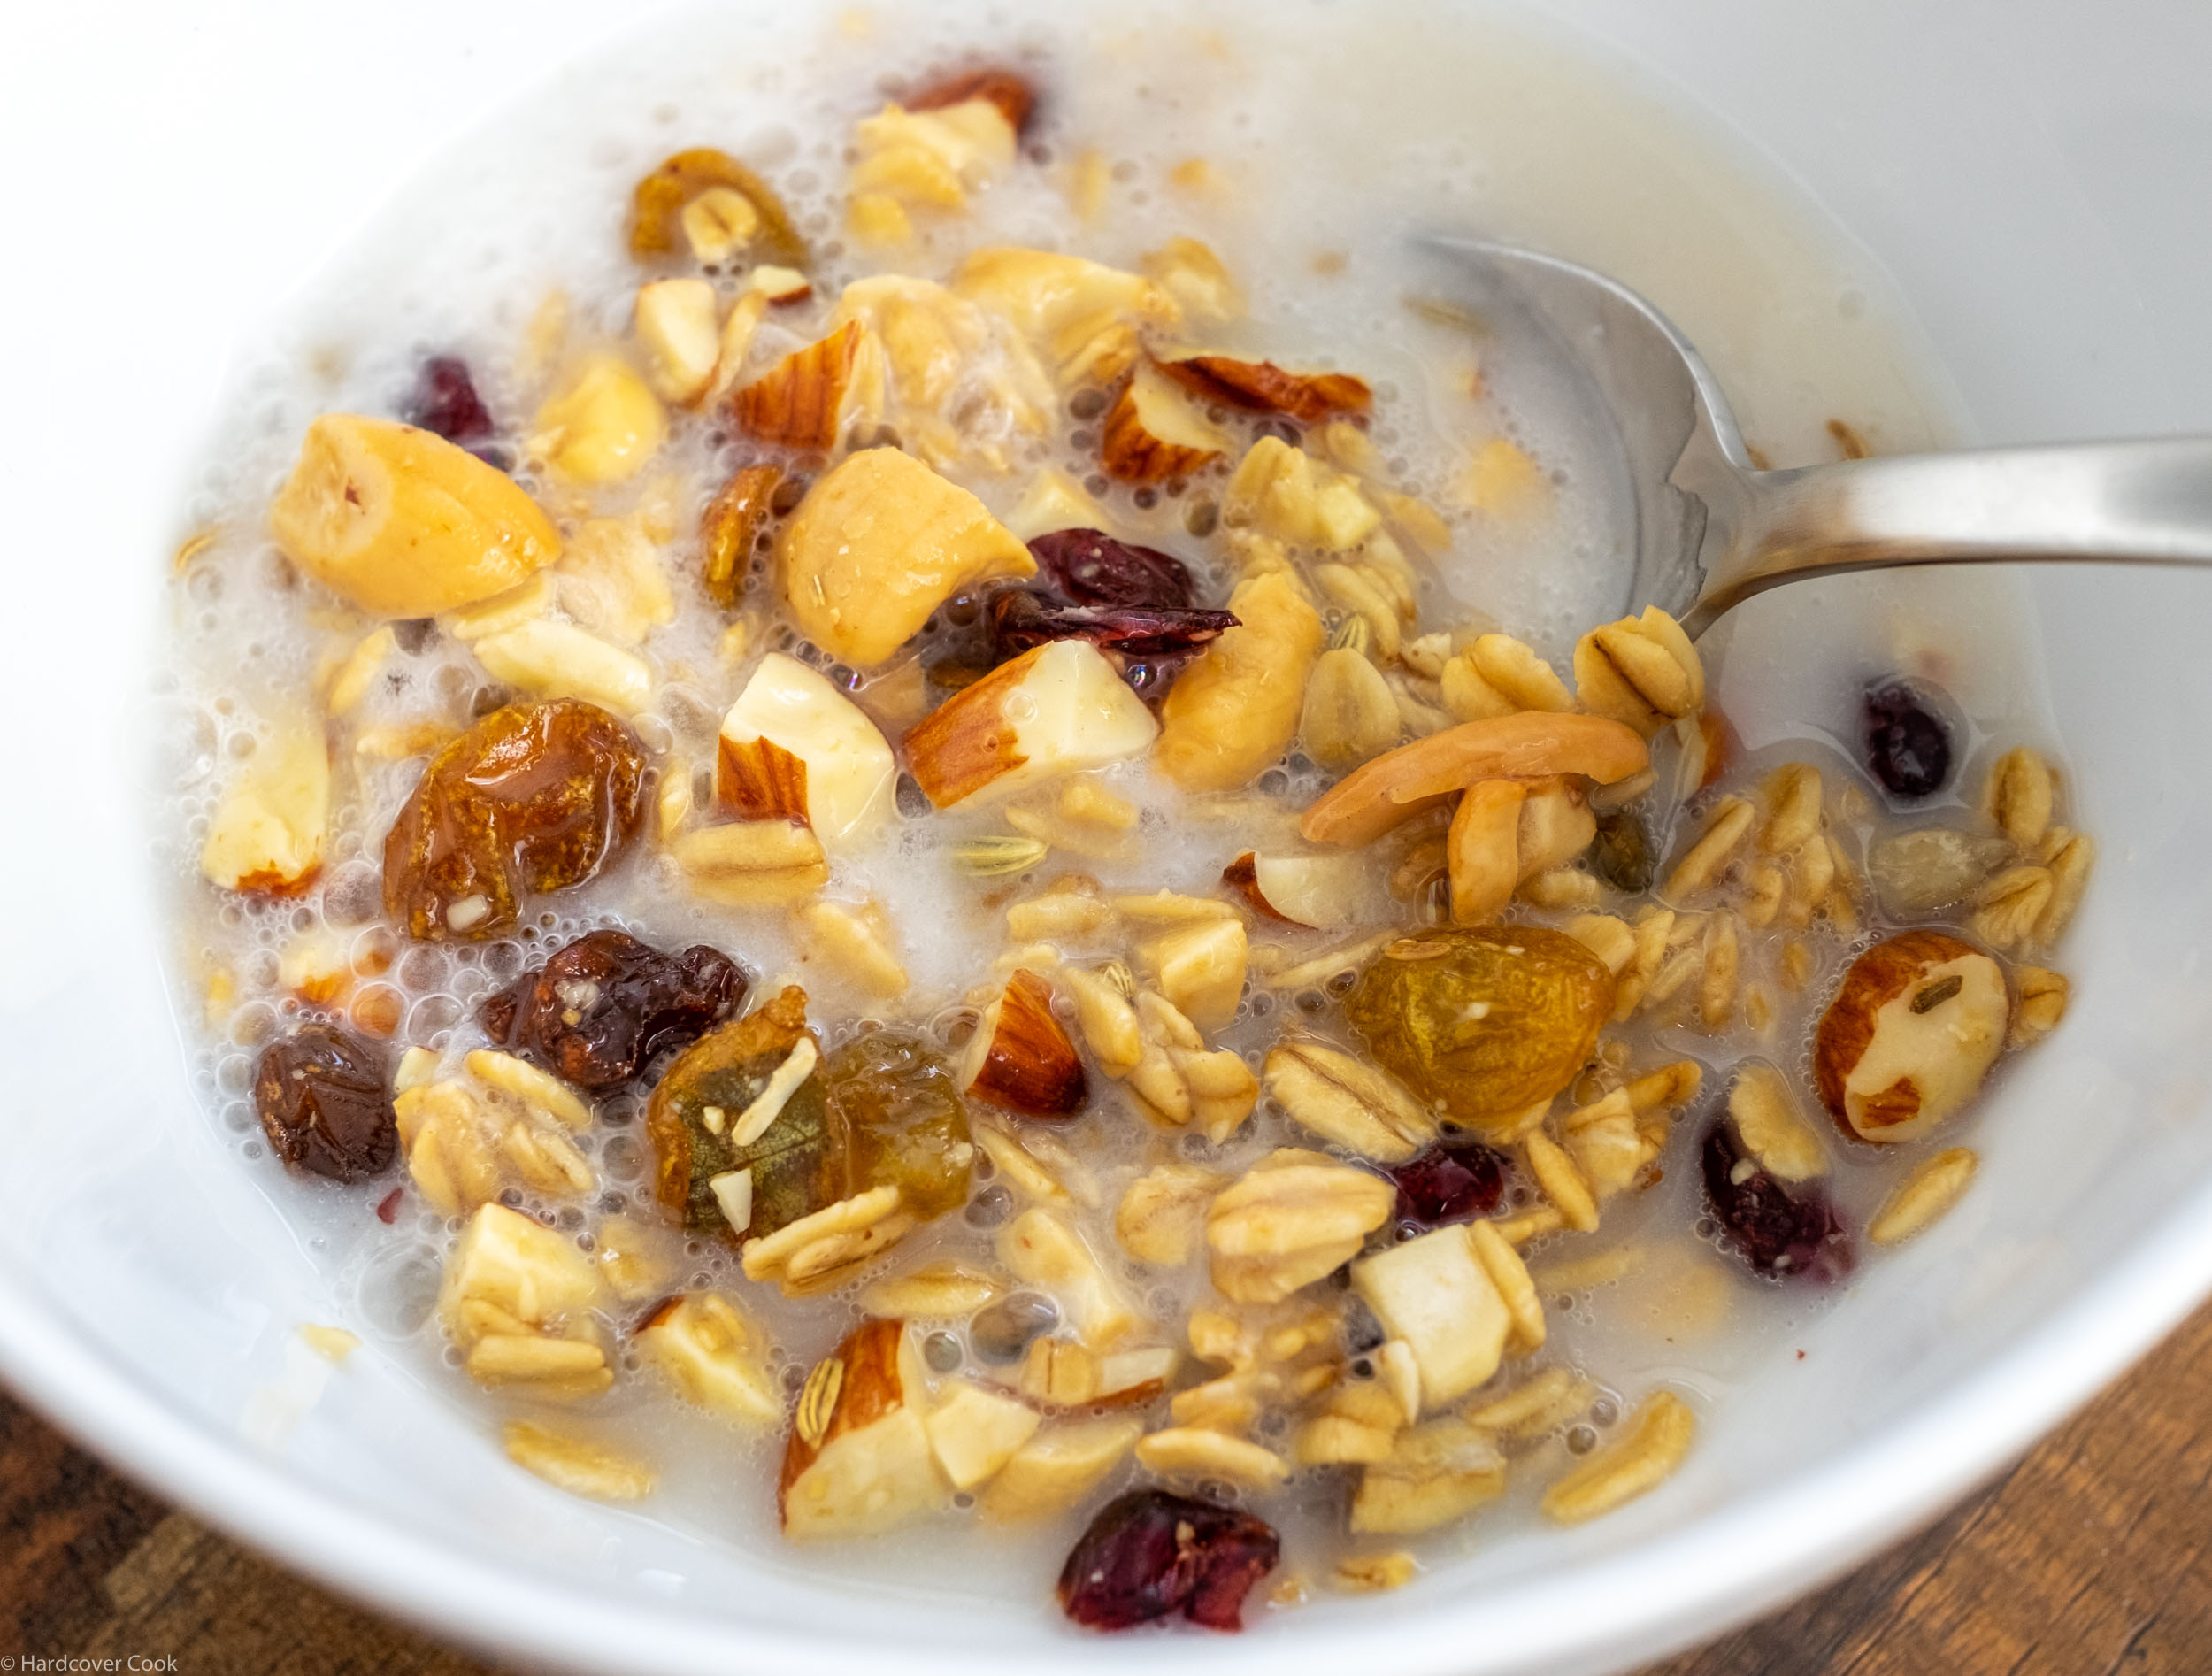 Fennel and Ginger-Spiced Sweet Granola from Season